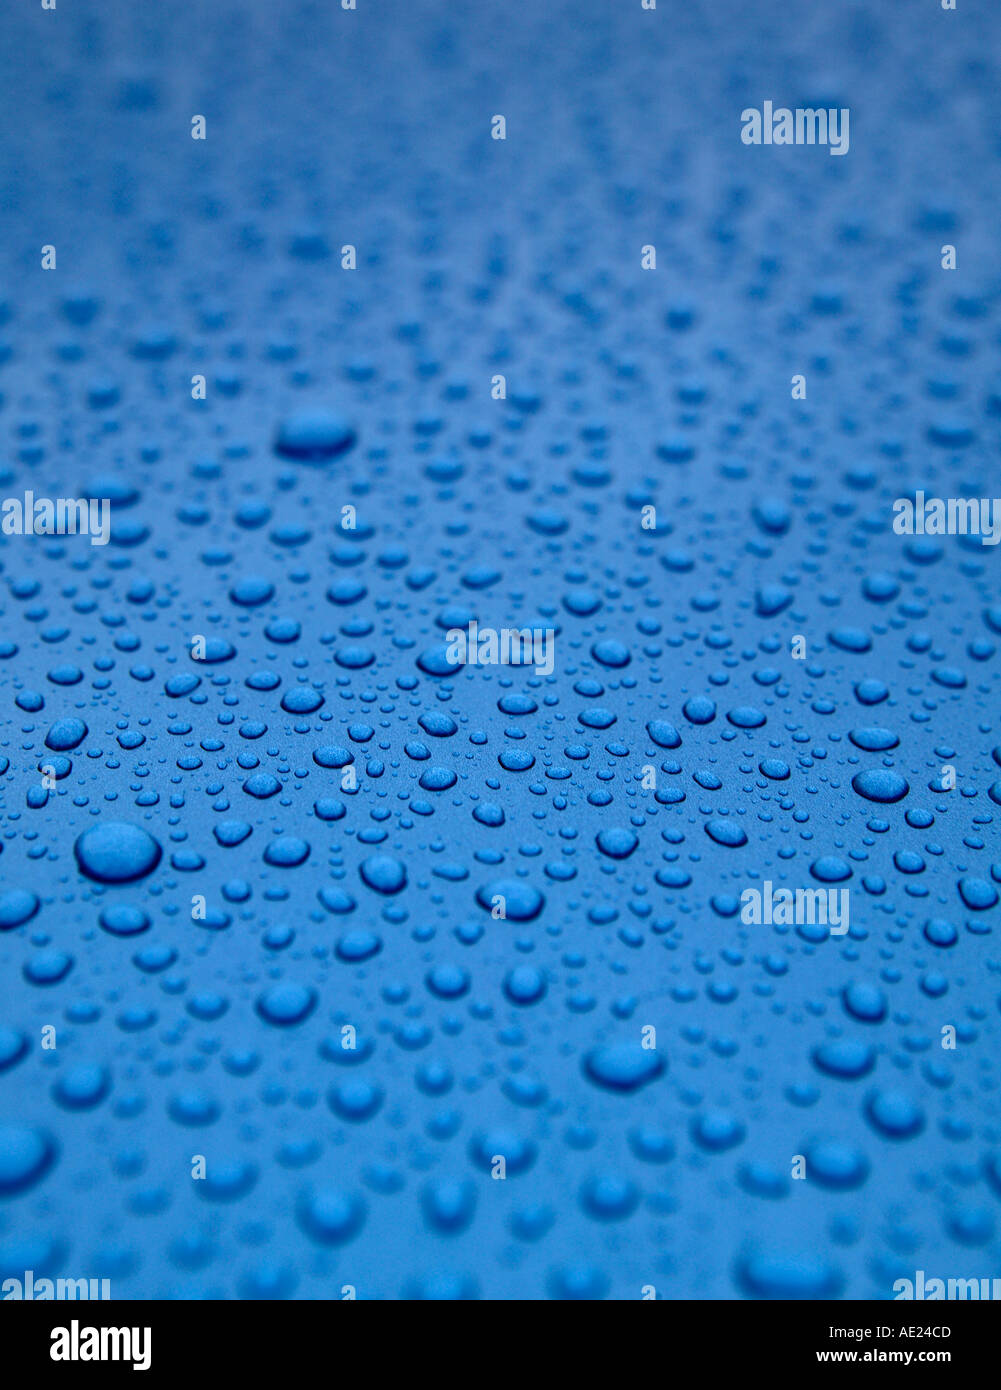 WATER DROPLETS ON BLUE METALLIC SURFACE - Stock Image